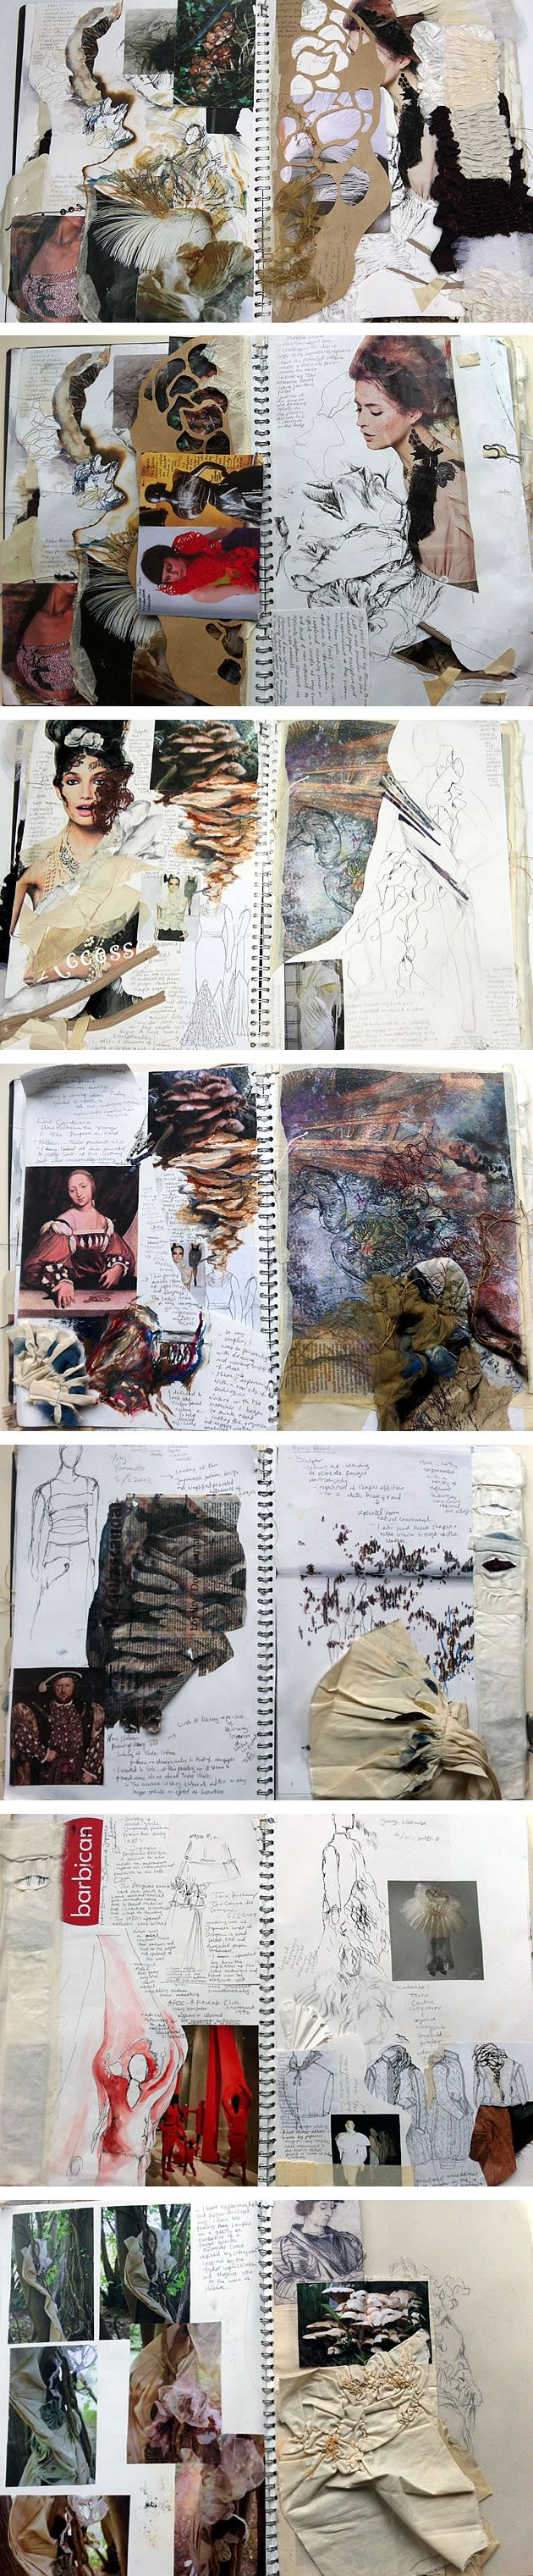 Halima Akhtar from Woldingham School, Caterham, Surrey, UK. Beautiful collage like textile folio.